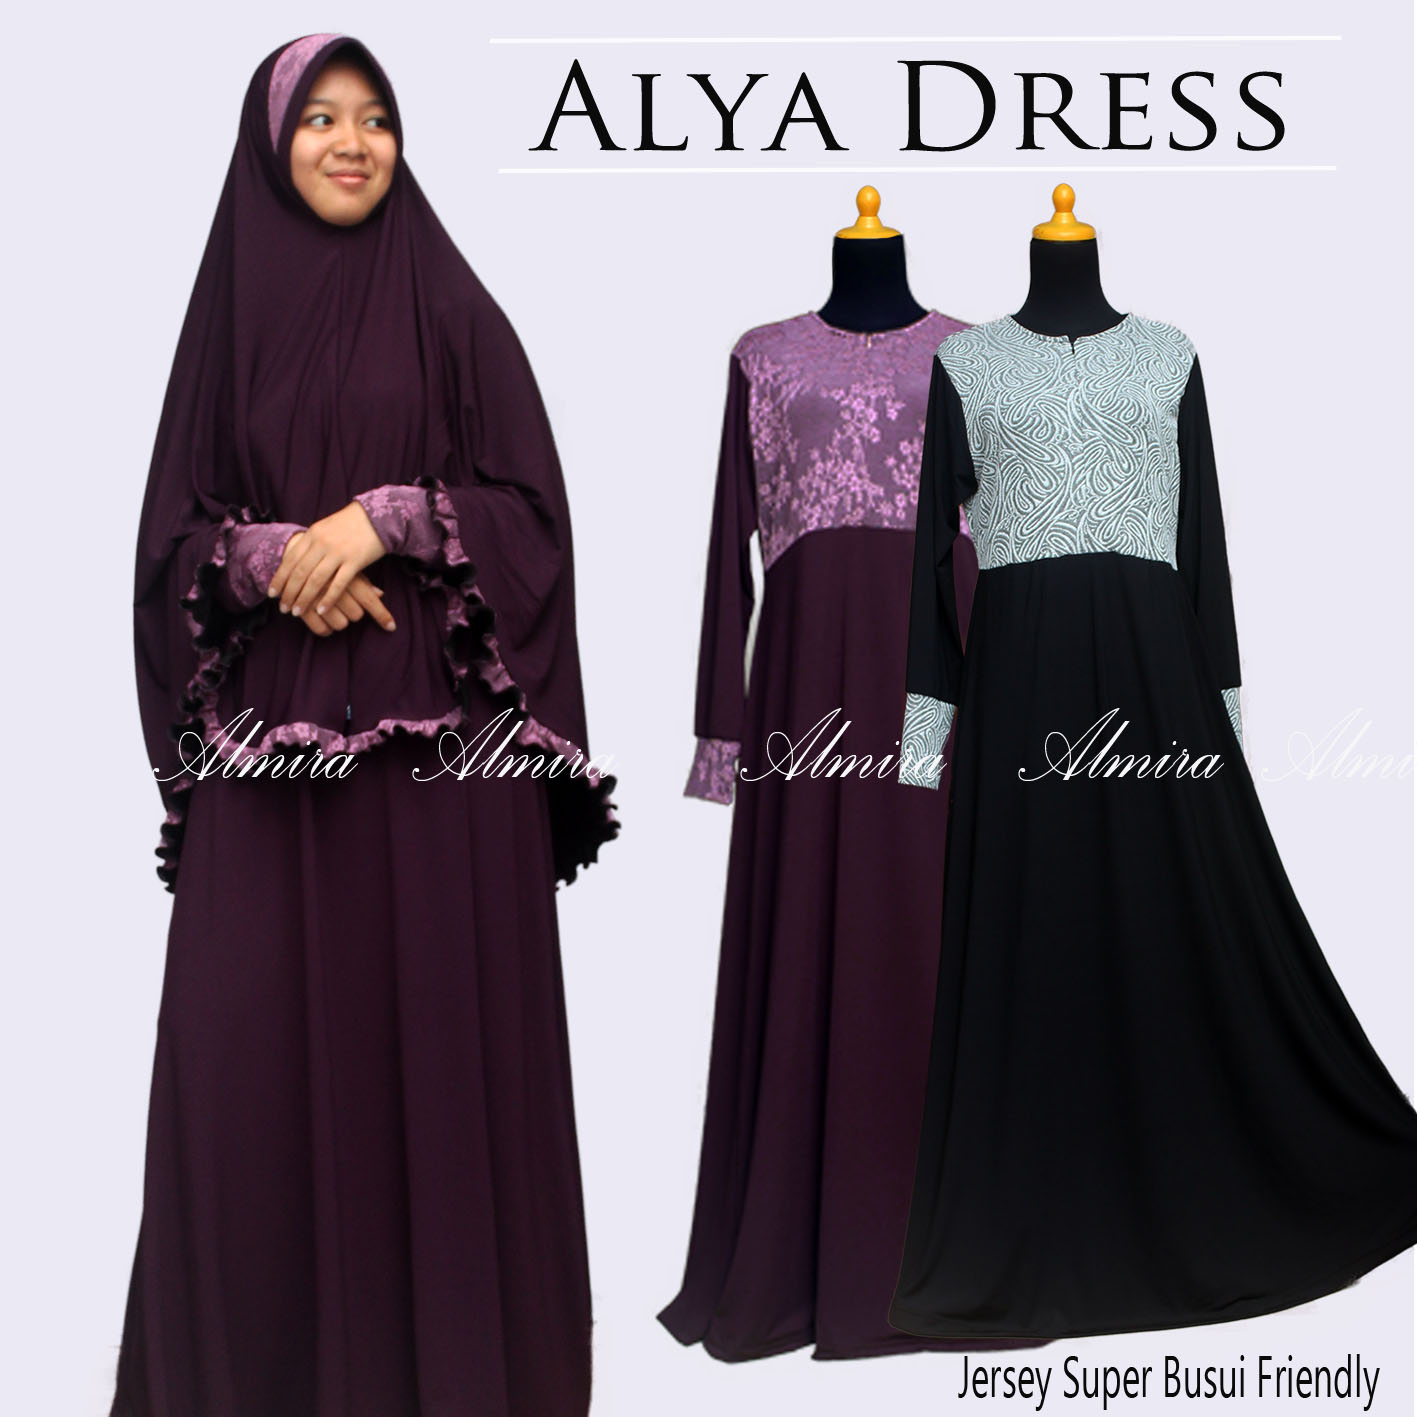 Baju Gamis Muslim Murah Busui Friendly Alya Dress Griya